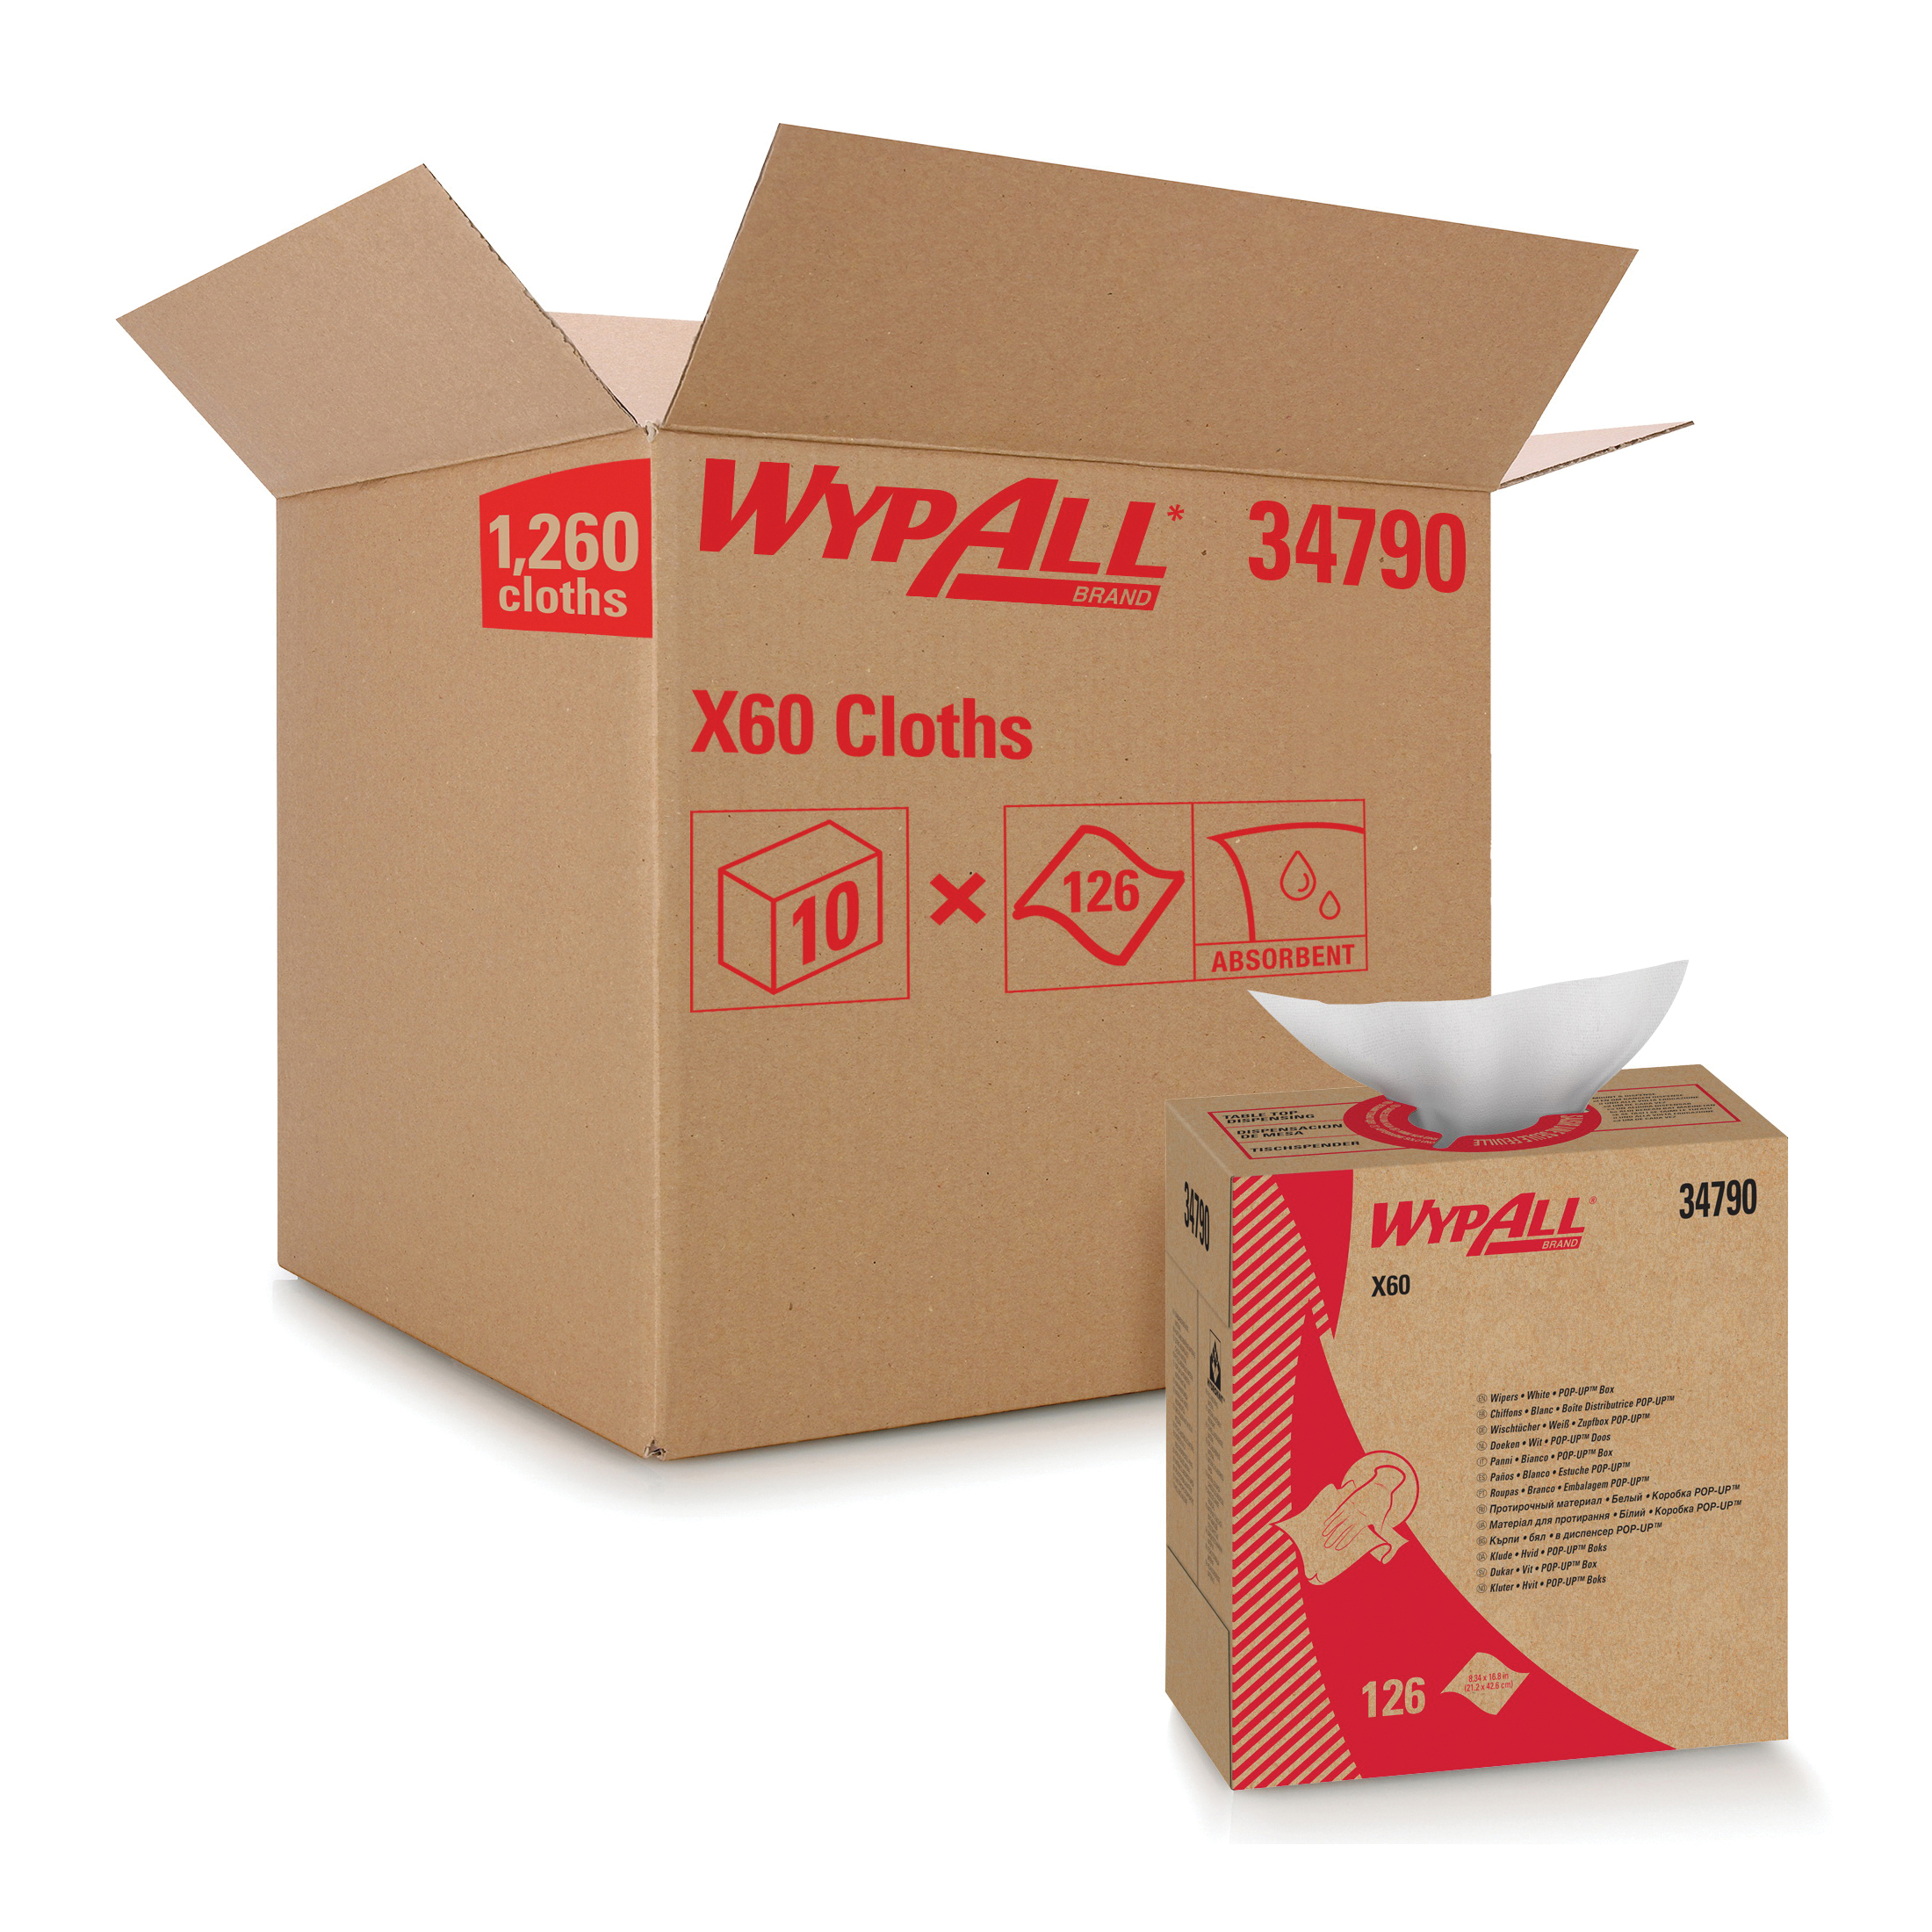 WypAll* 34015 X60 Lightweight General Purpose Wiper, 16.8 x 12.5 in, 180 Sheets Capacity, Hydroknit*, White